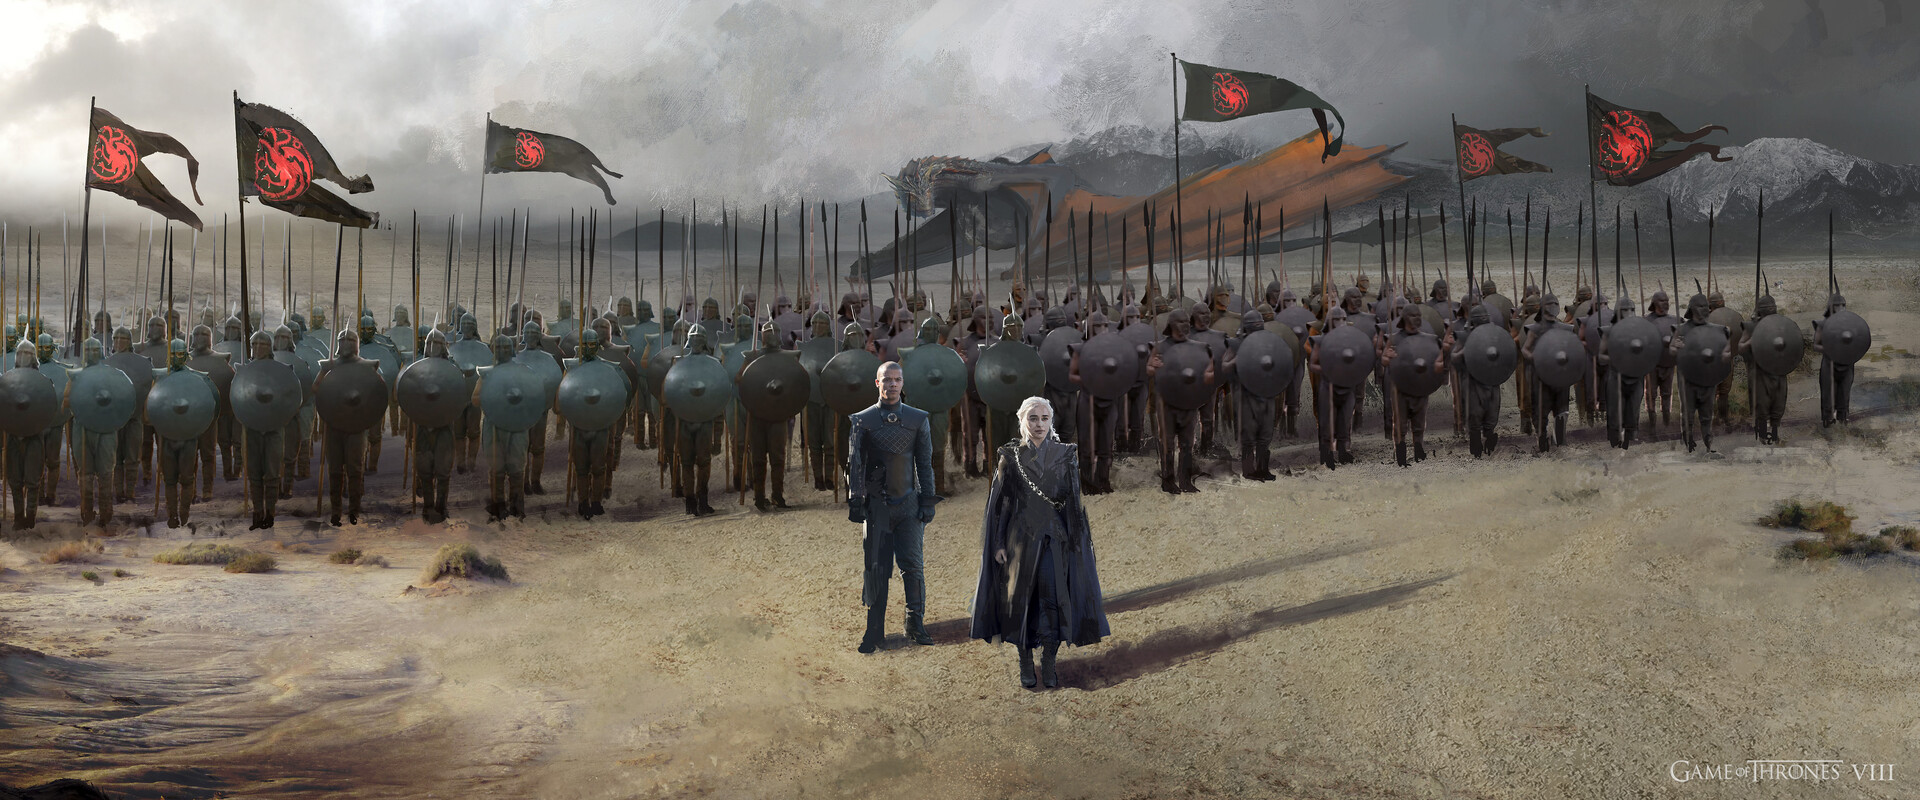 View of Daenerys with a small contingent of Unsullied soldiers